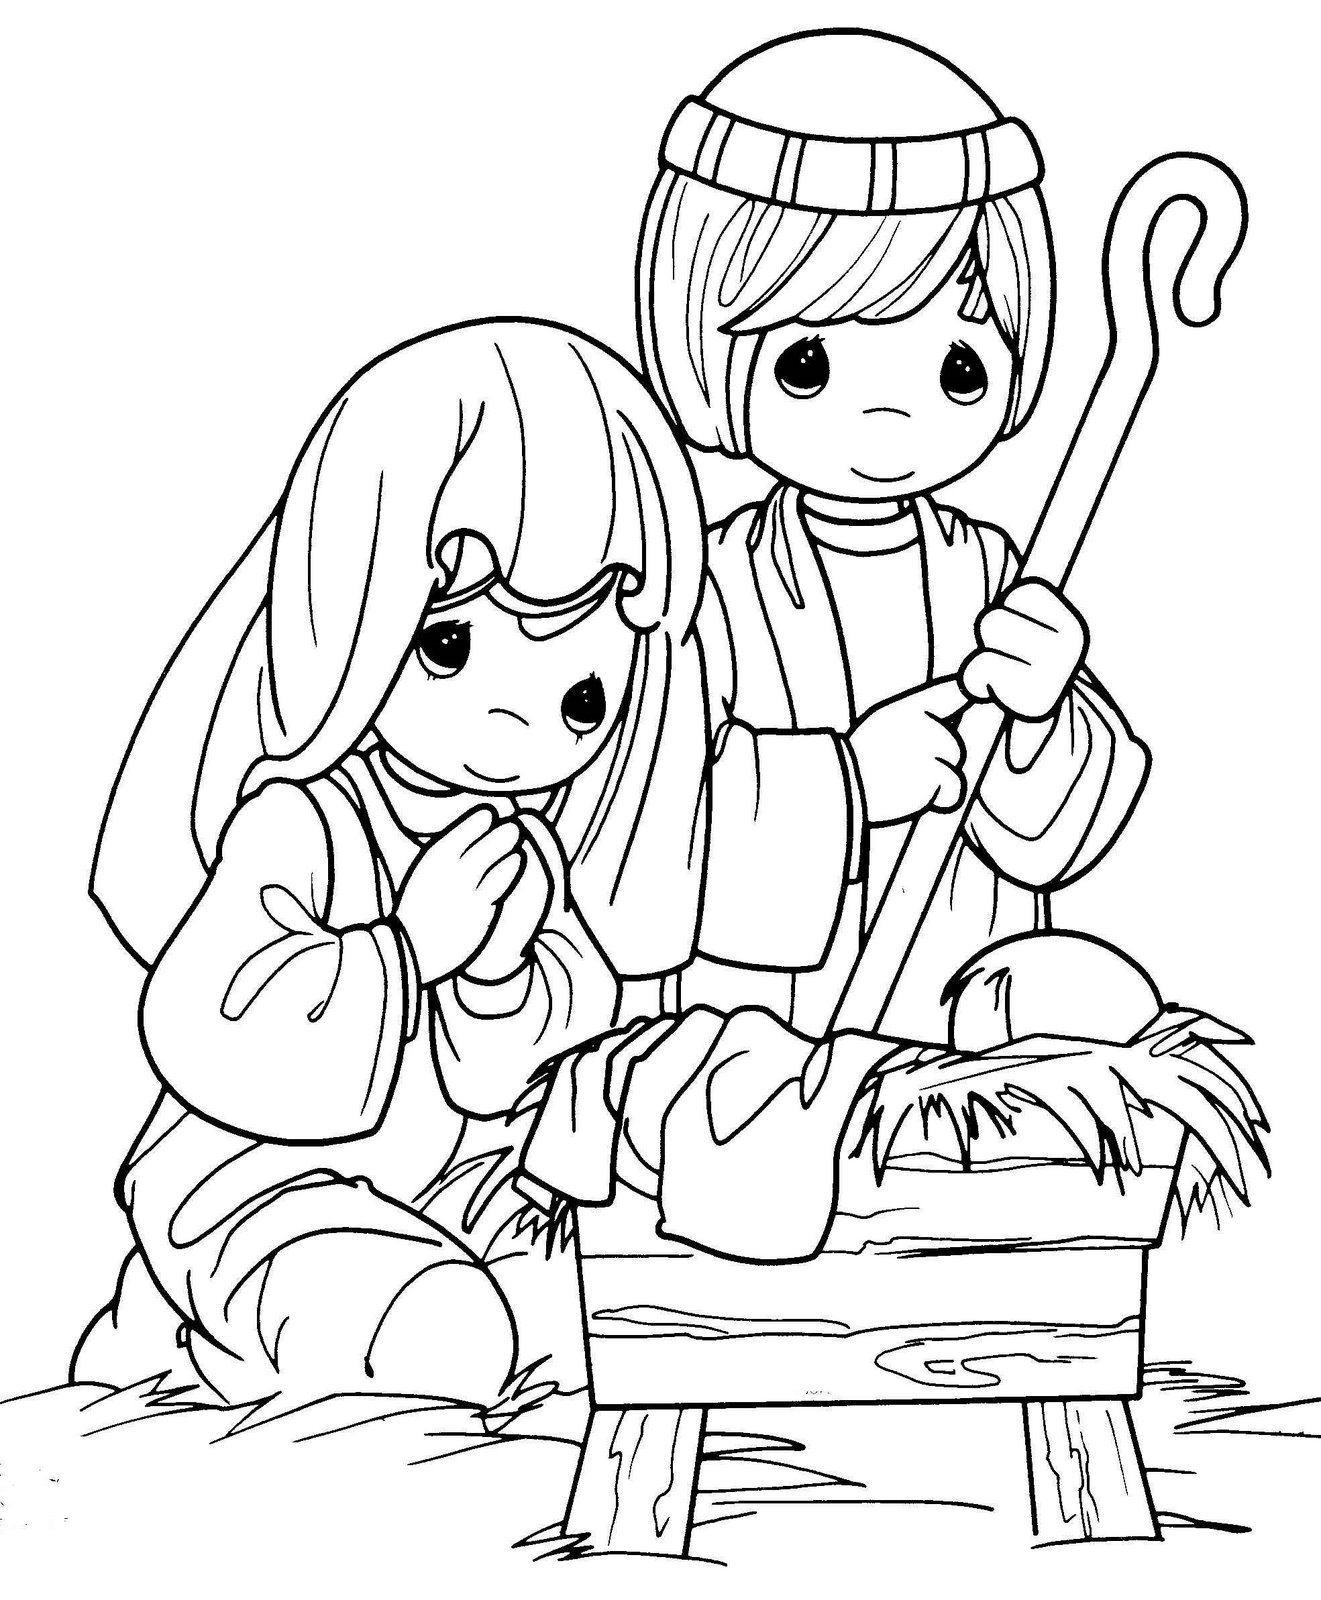 coloring pages baby jesus in manger coloring pictures of baby jesus in a manger coloring pages jesus baby manger in pages coloring